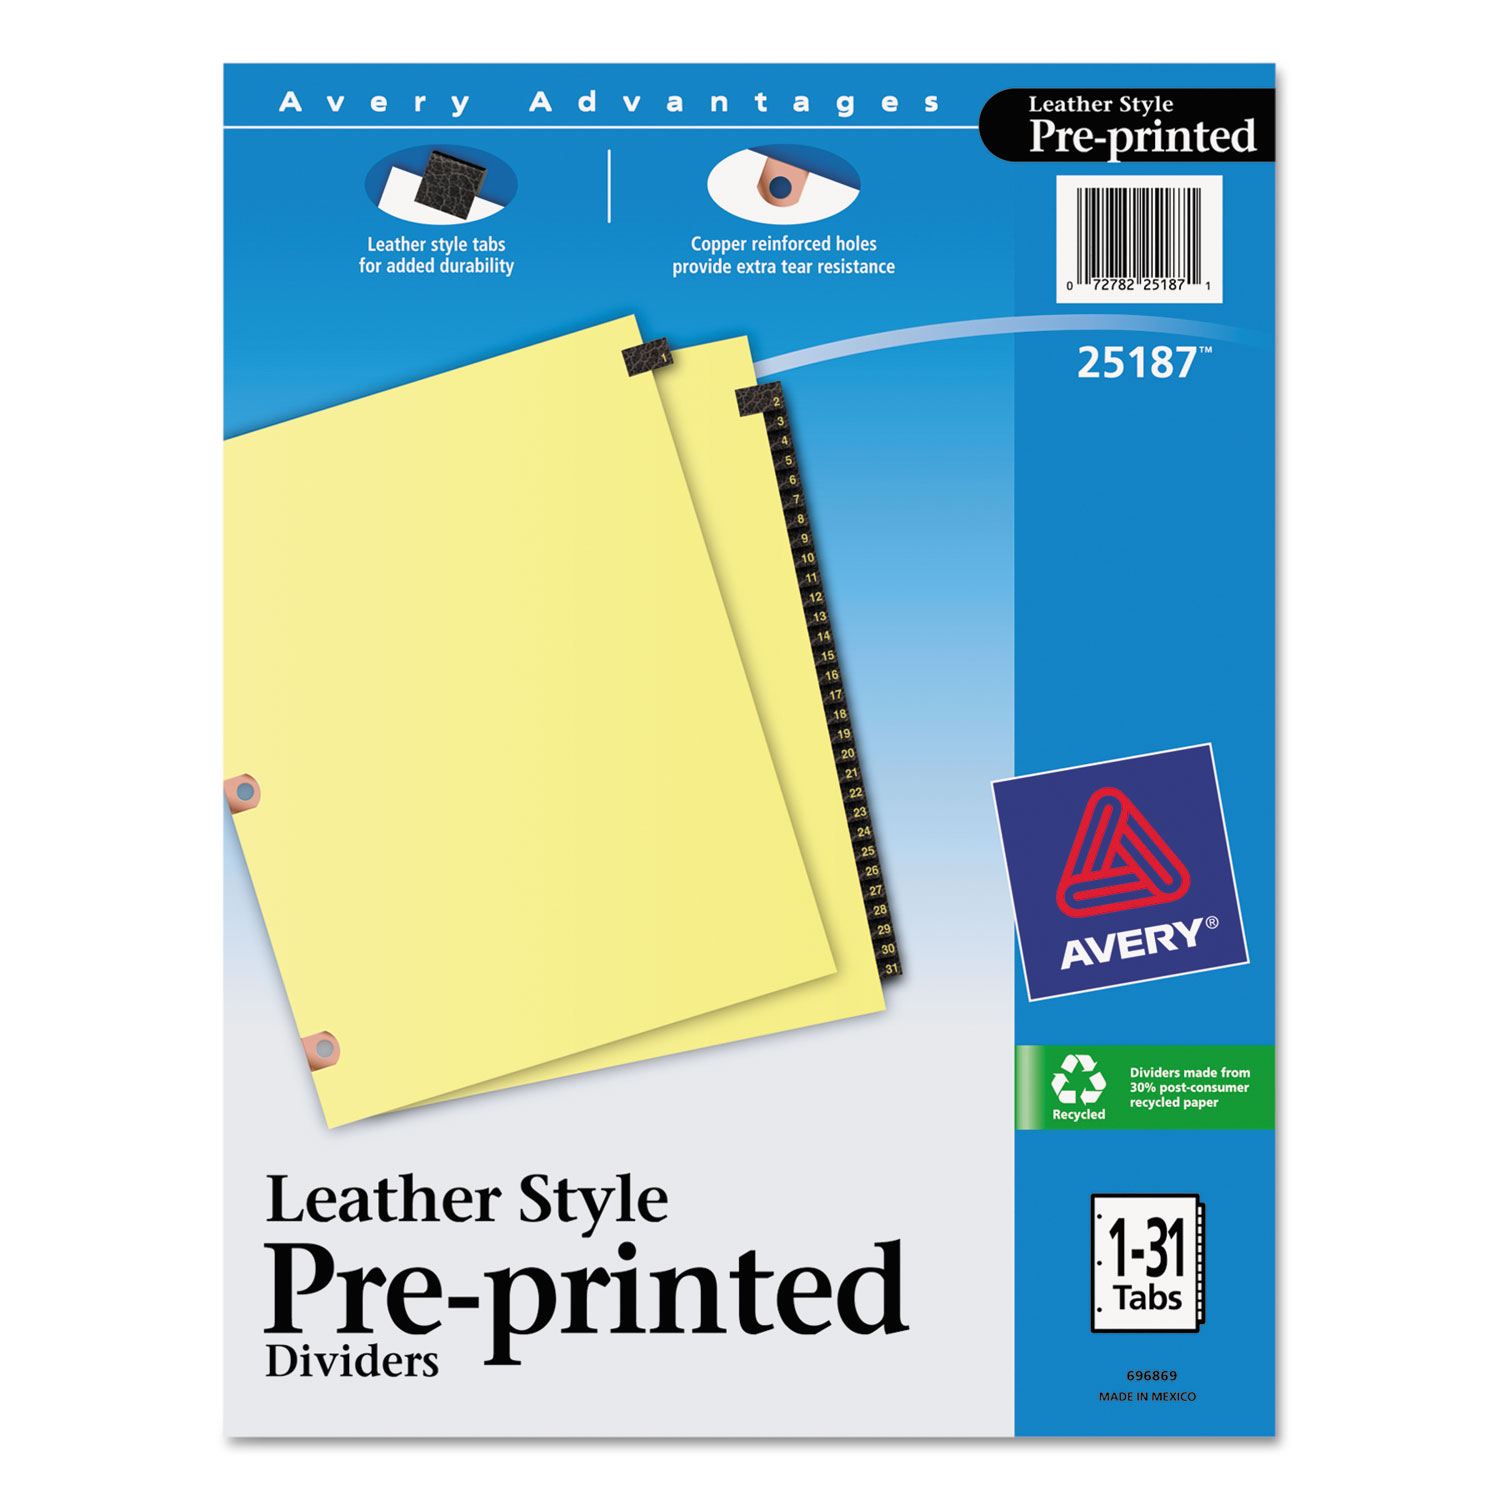 Preprinted Black Leather Tab Dividers w/Copper Reinforced Holes, 31-Tab, Letter